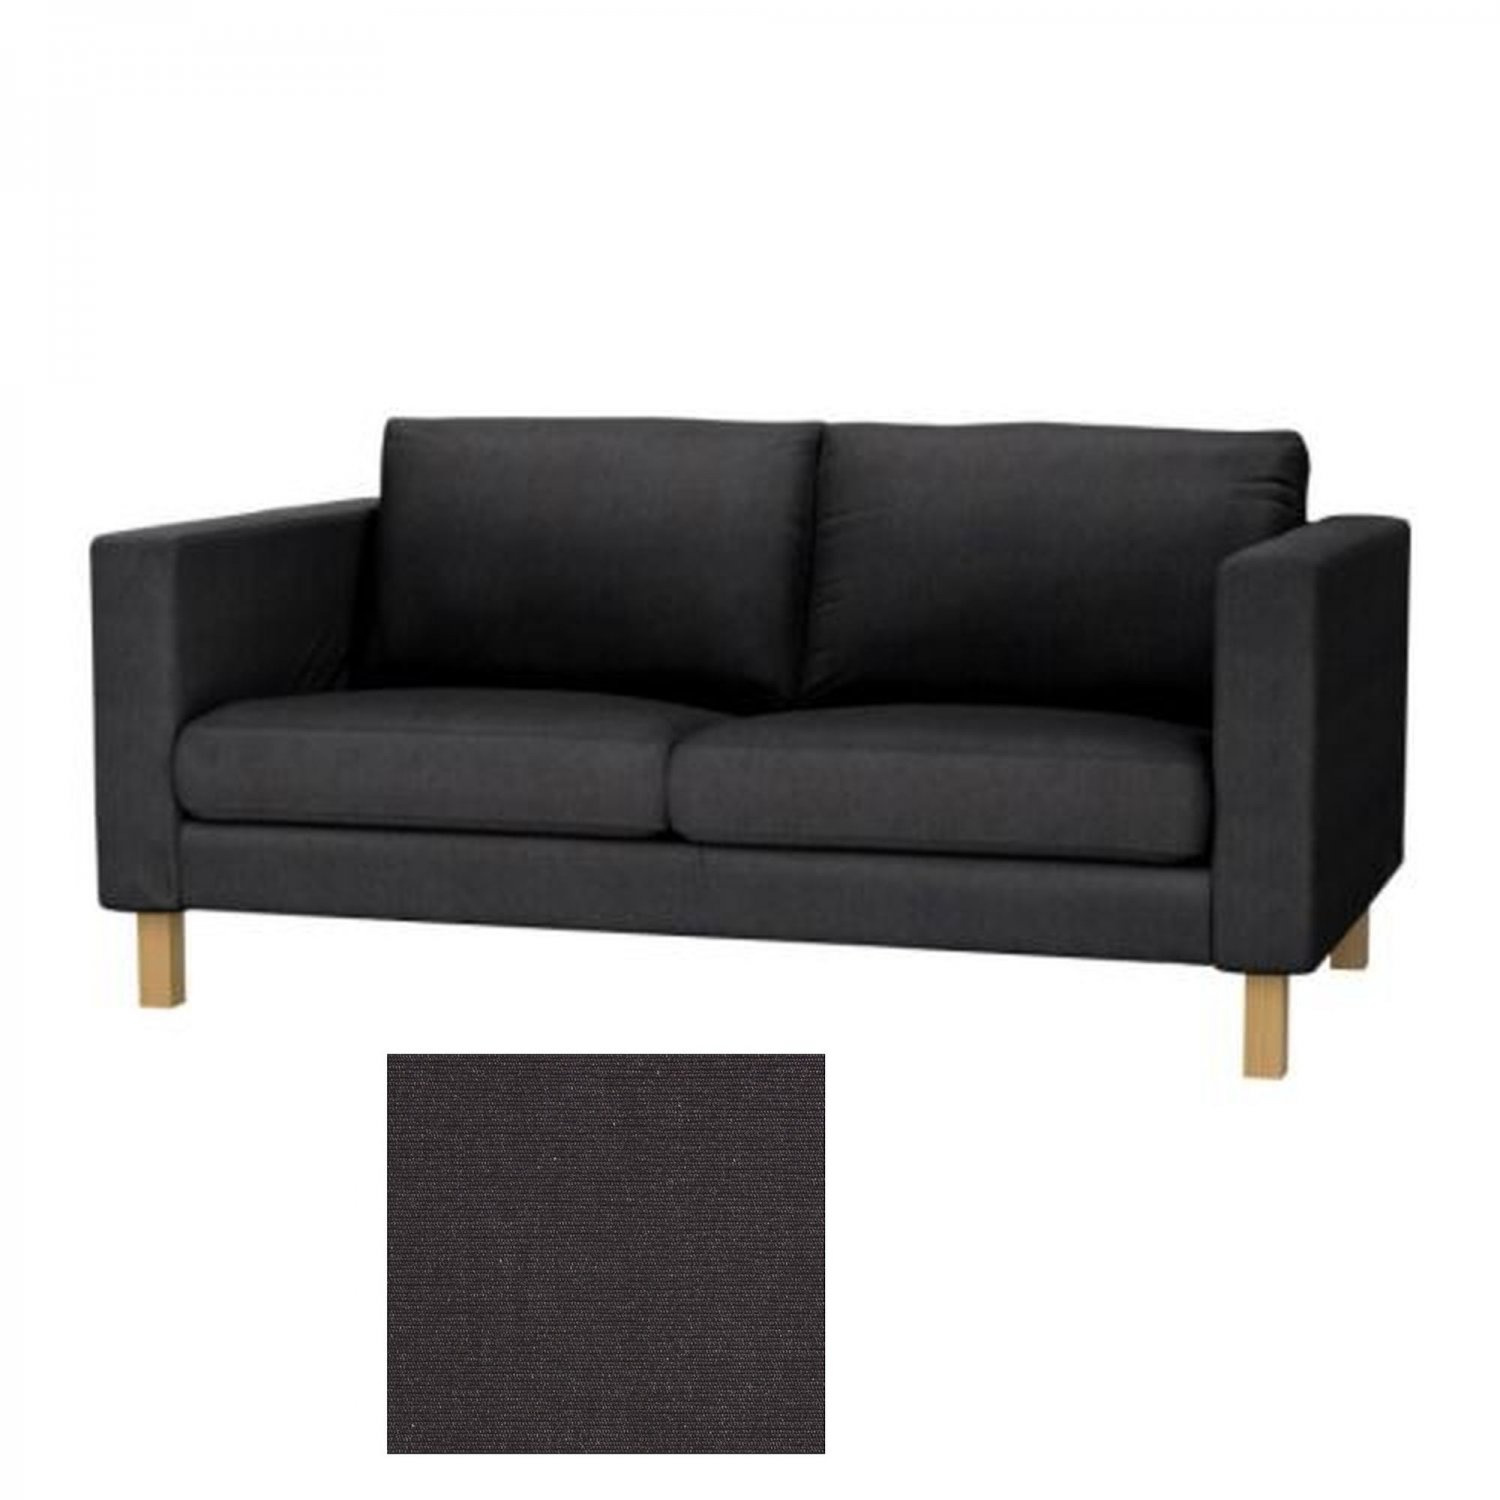 ikea karlstad 2 seat sofa slipcover loveseat cover sivik dark gray grey. Black Bedroom Furniture Sets. Home Design Ideas